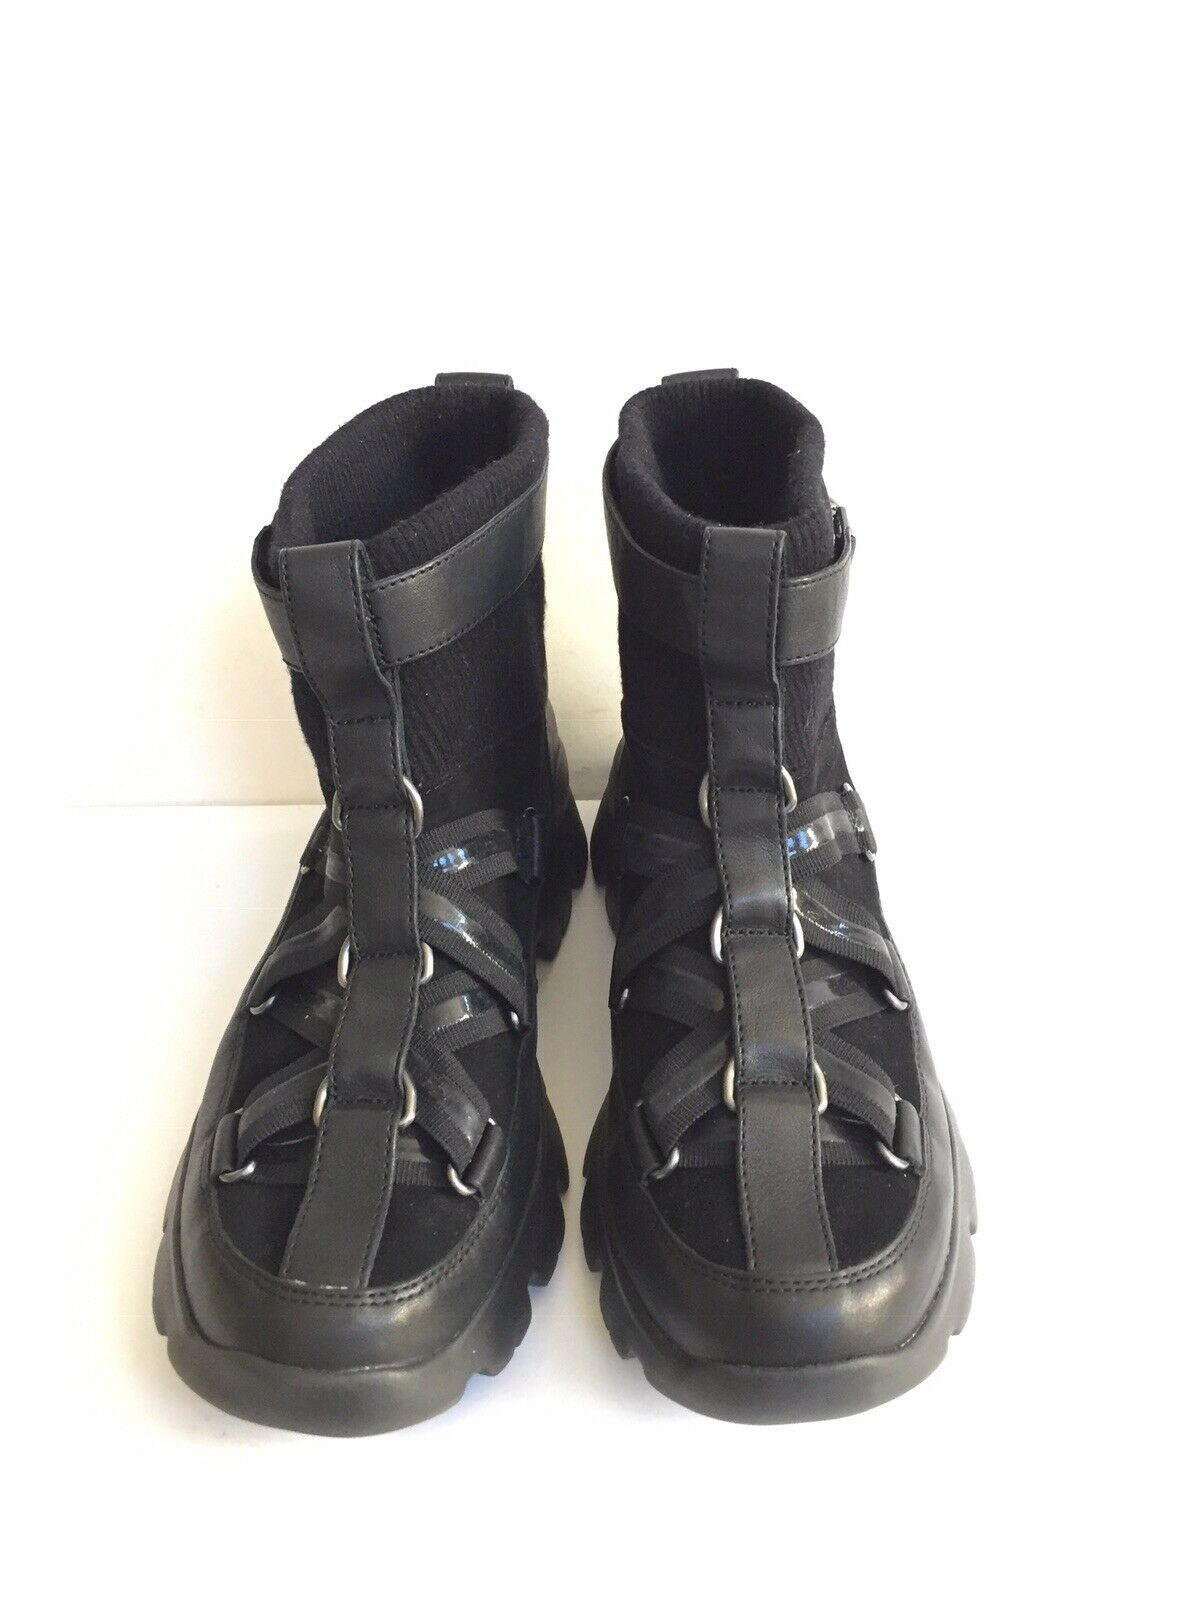 UGG PUFF MOMMA LAKES & LIGHTS BLACK WINTER FUR SNEAKERS US 11 / EU 42 / UK 9 image 3